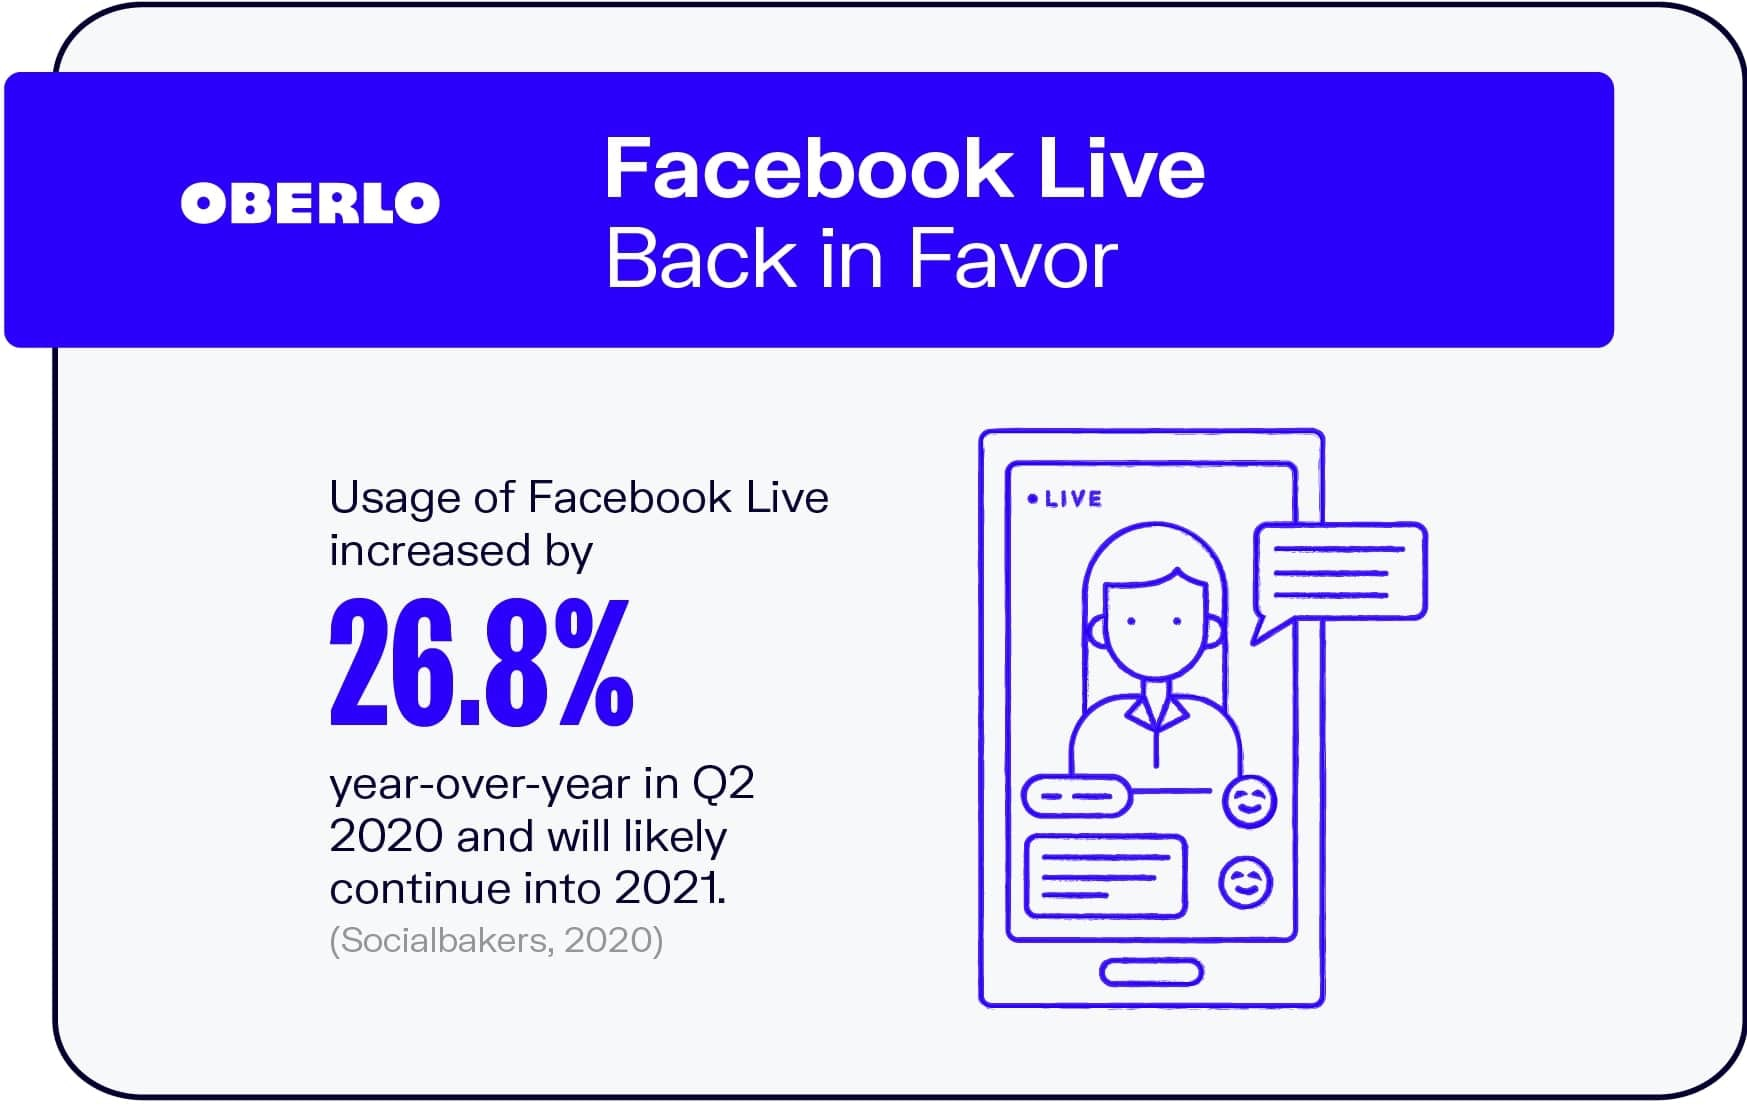 Facebook Live Back in Favor